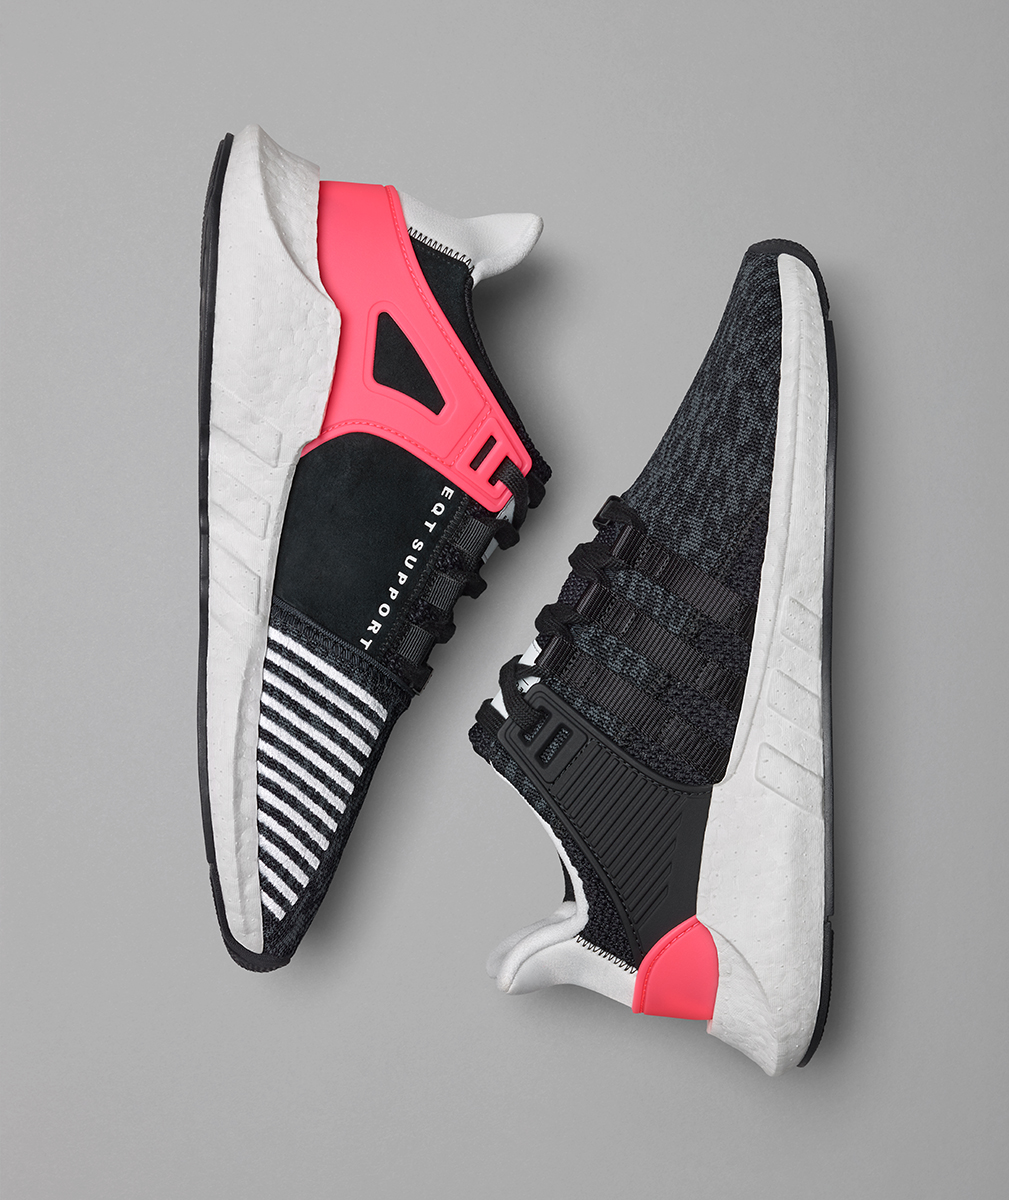 Adidas EQT Support ADV 93/17 Black Turbo Red